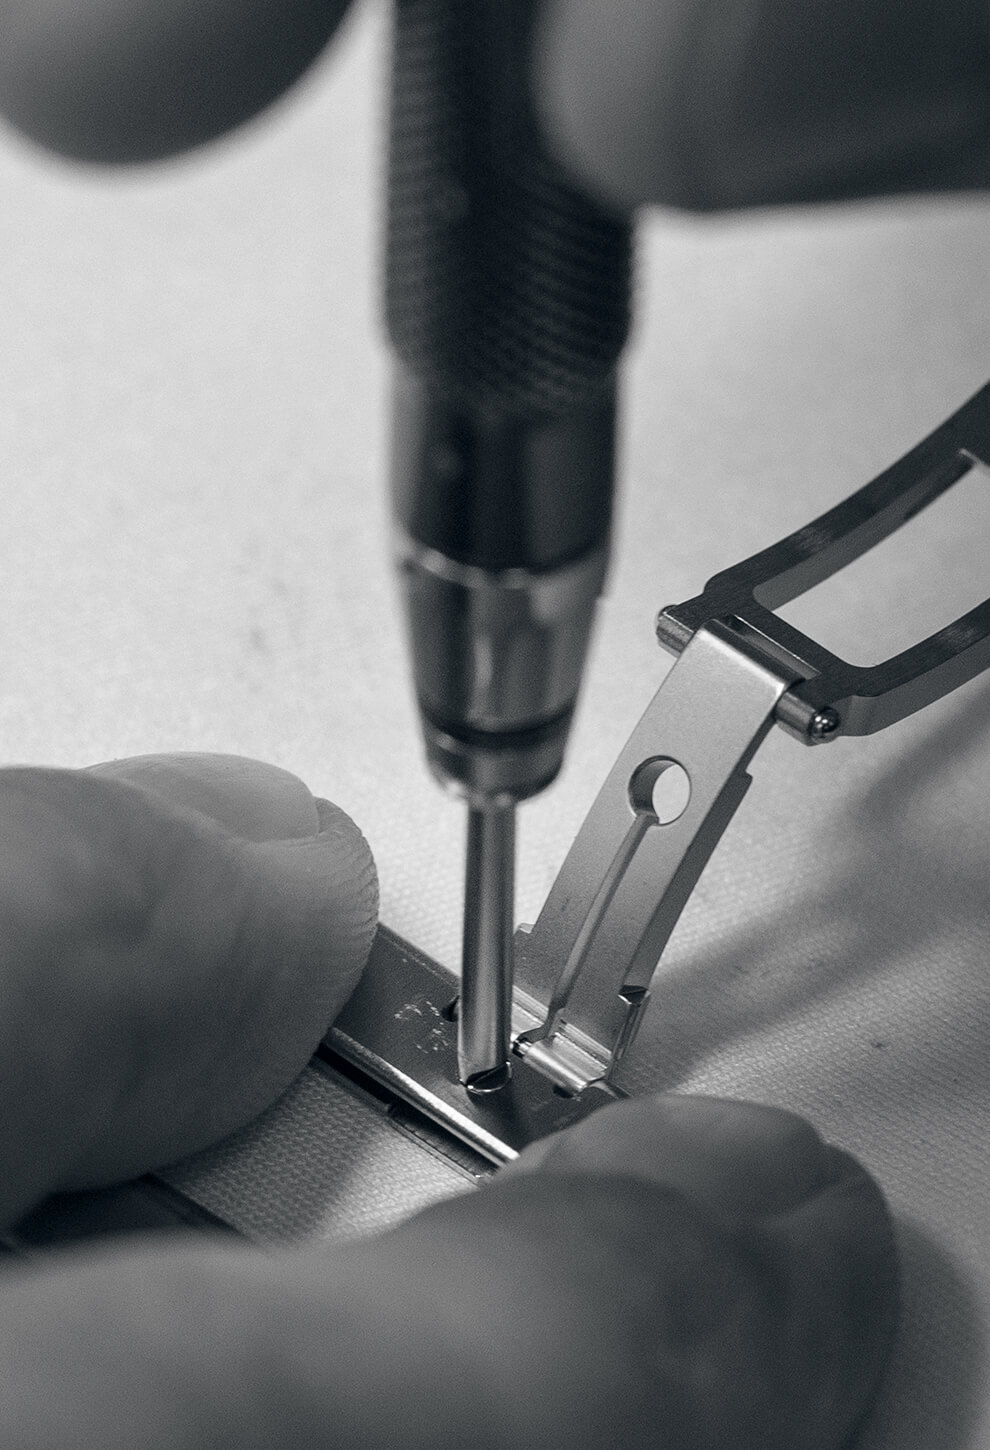 Close-up view of a Chopard employee's fingers as he works on a watch bracelet.